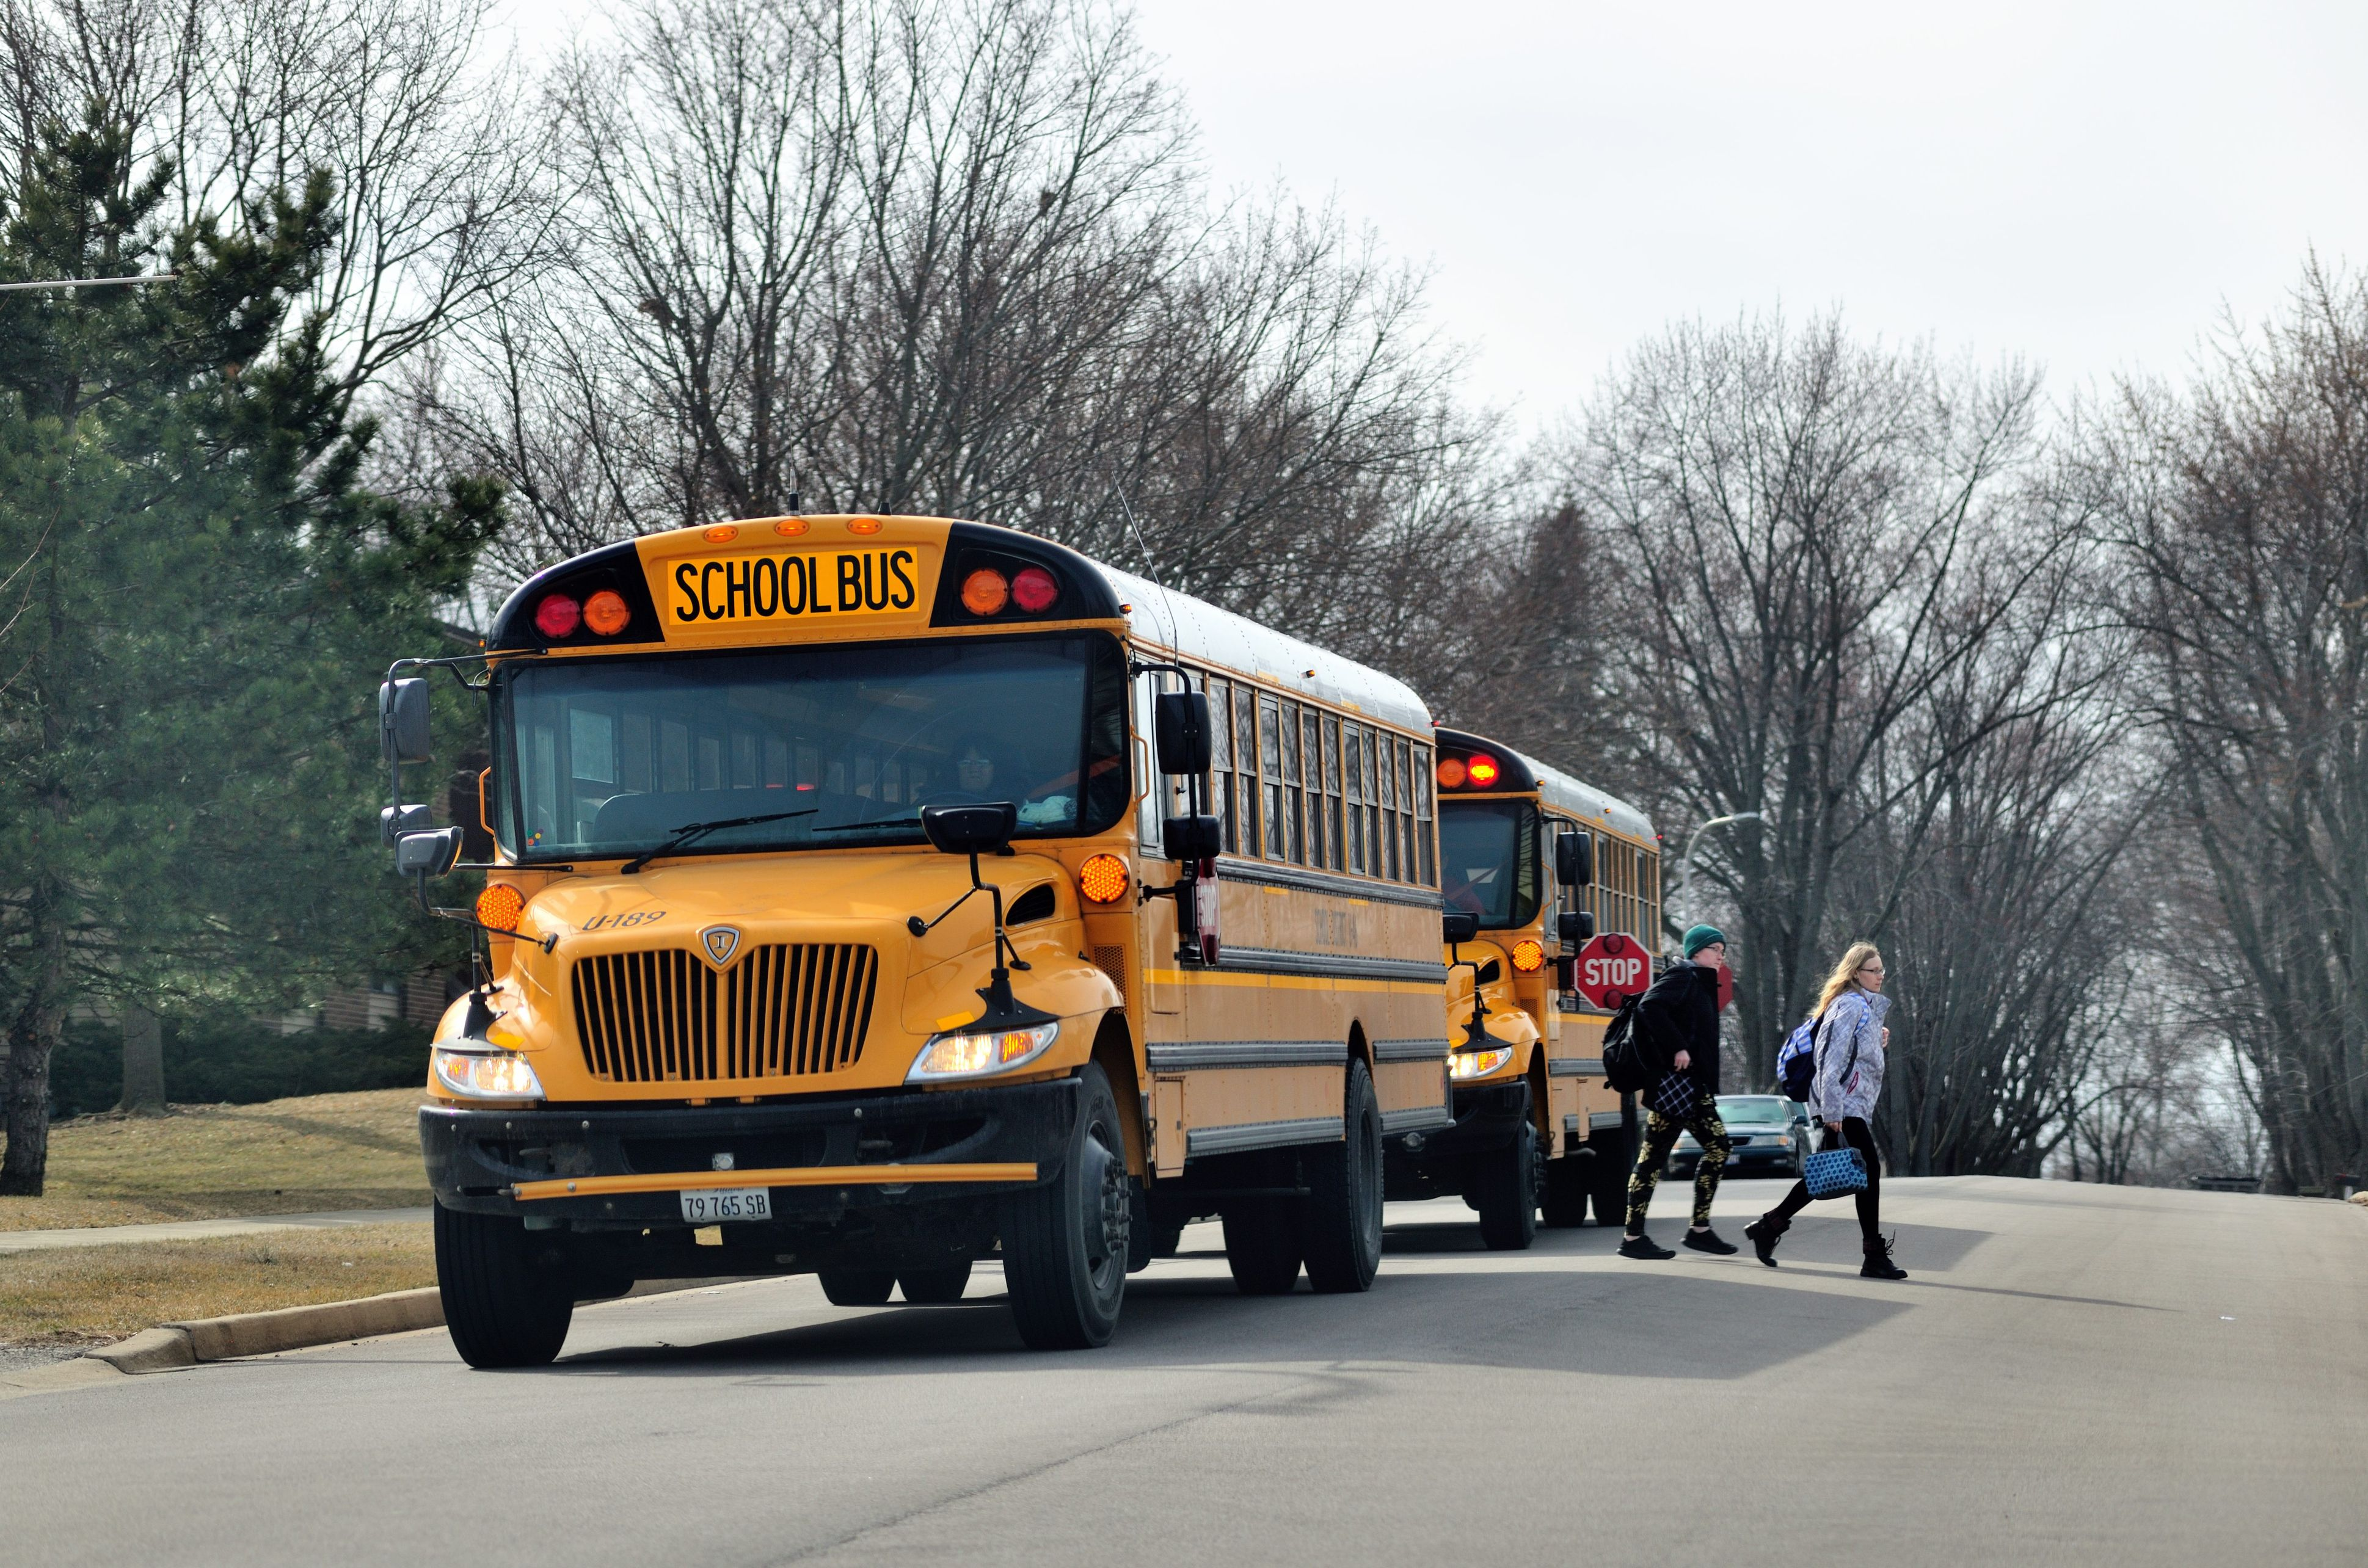 Https Space Rockets A25238130 Elon How To Turn Your Truck Into A Generator The Family Handyman Students Exiting School Bus Near Home High Res Stock Photography 948749016 1542065103